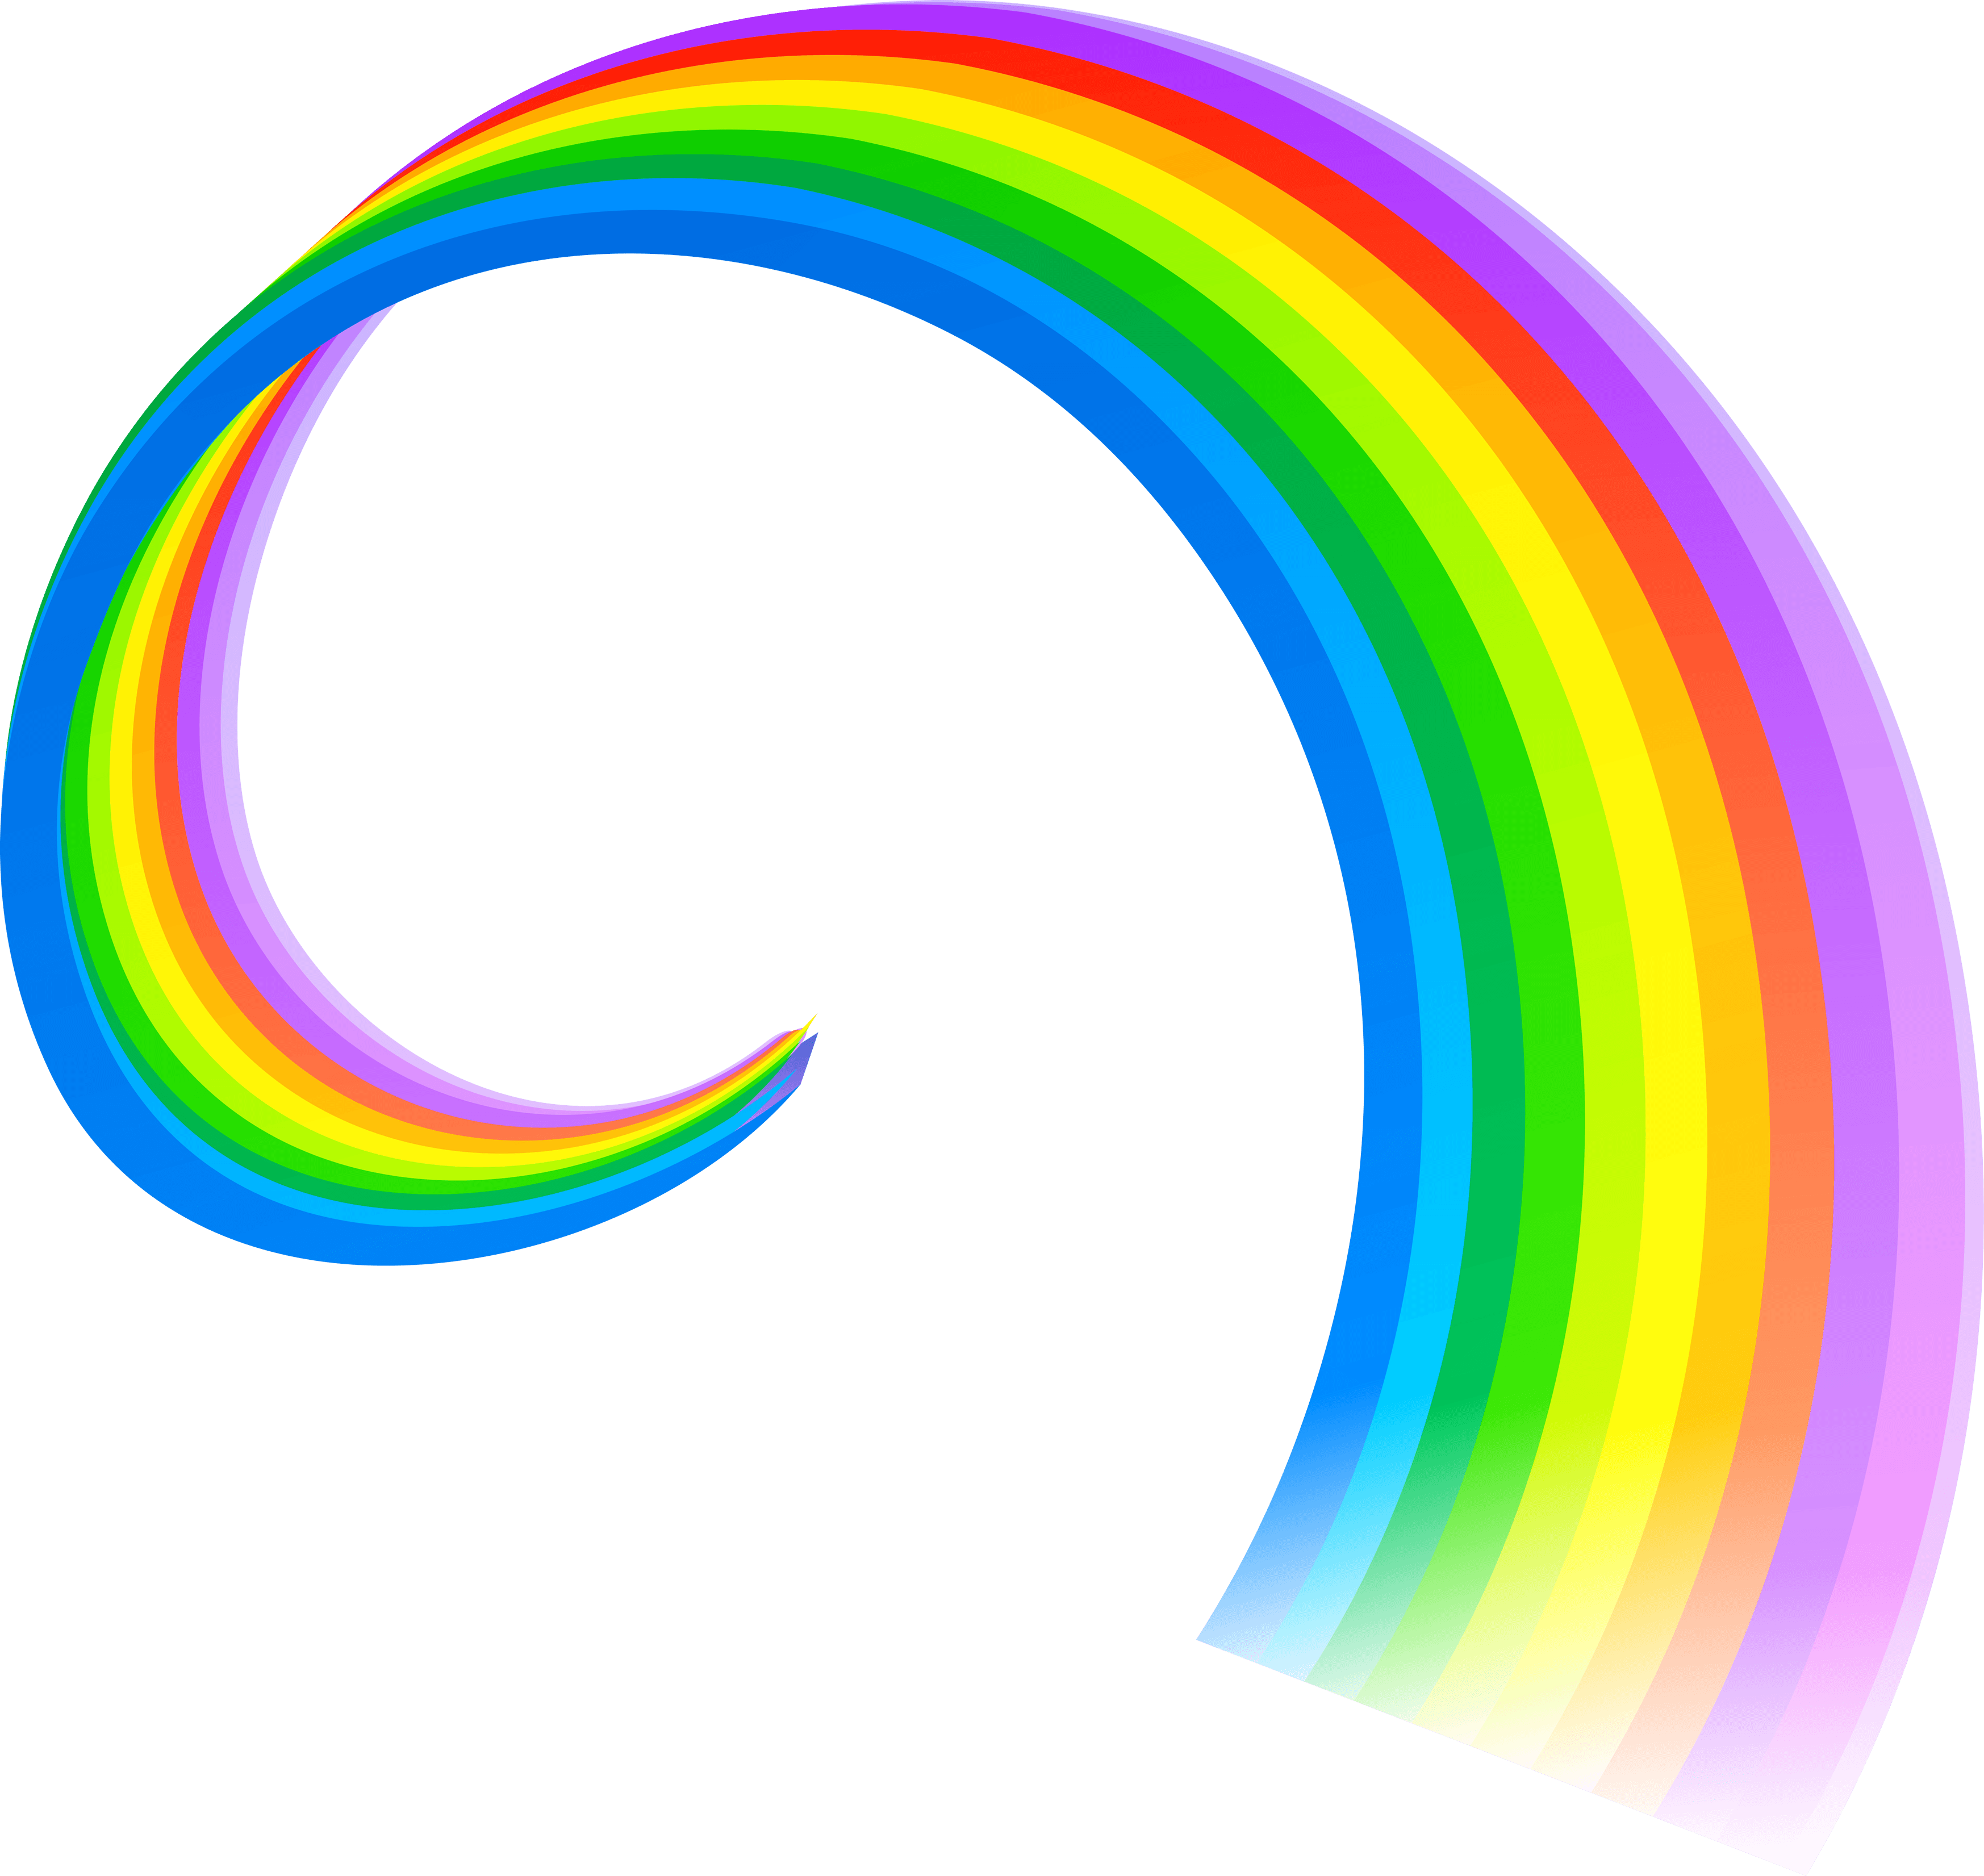 download rainbow png image png image pngimg #12554